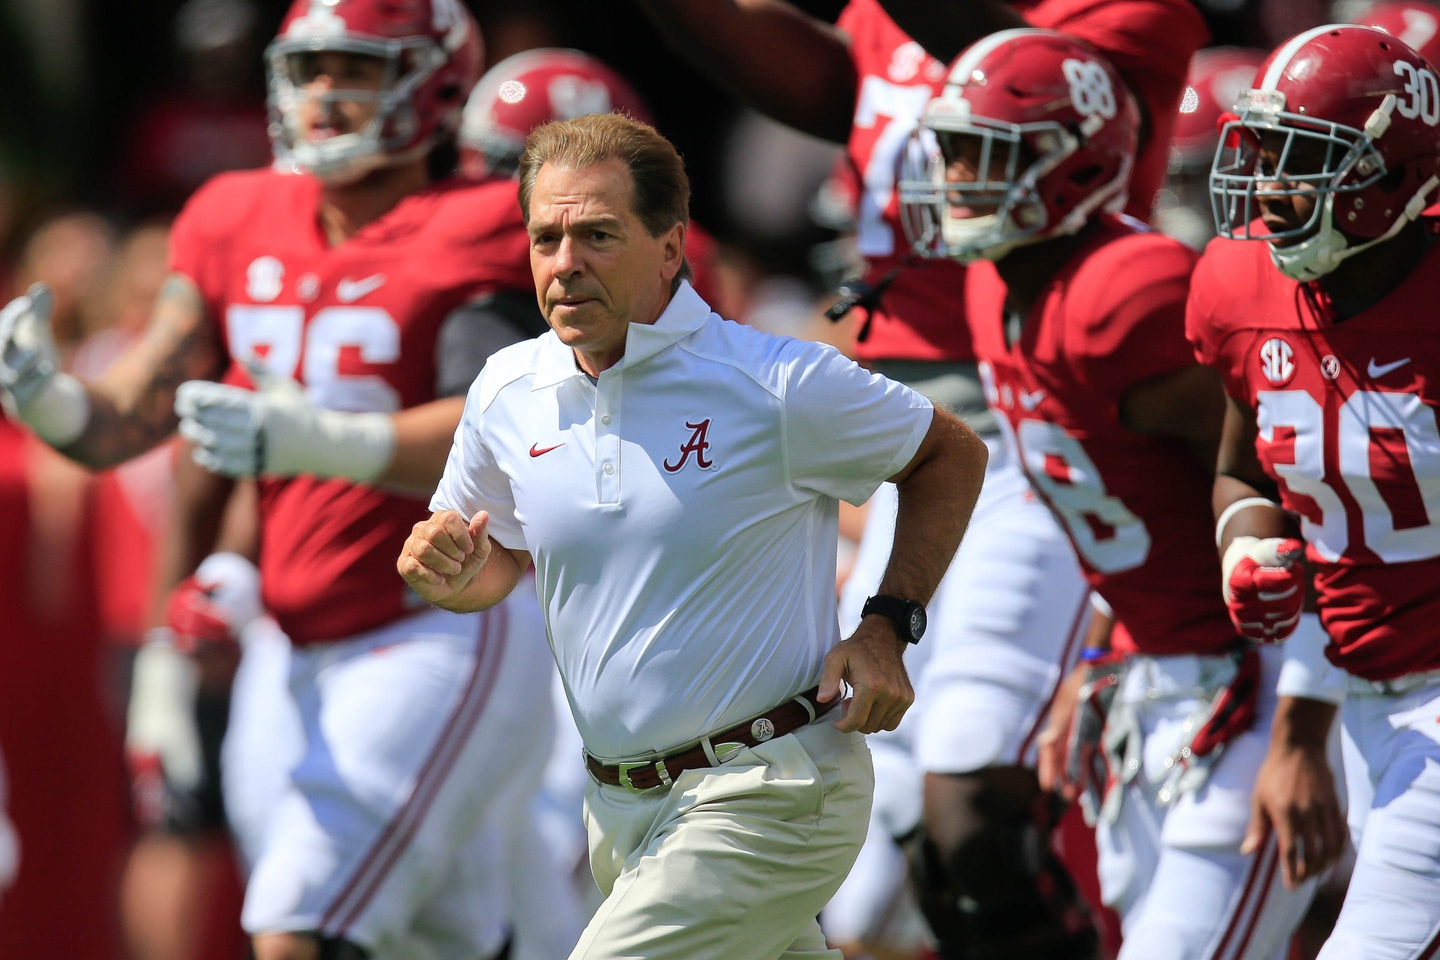 Sep 12, 2015; Tuscaloosa, AL, USA; Alabama Crimson Tide head coach Nick Saban brings his team onto the field prior to the game against Middle Tennessee Blue Raiders at Bryant-Denny Stadium. Mandatory Credit: Marvin Gentry-USA TODAY Sports